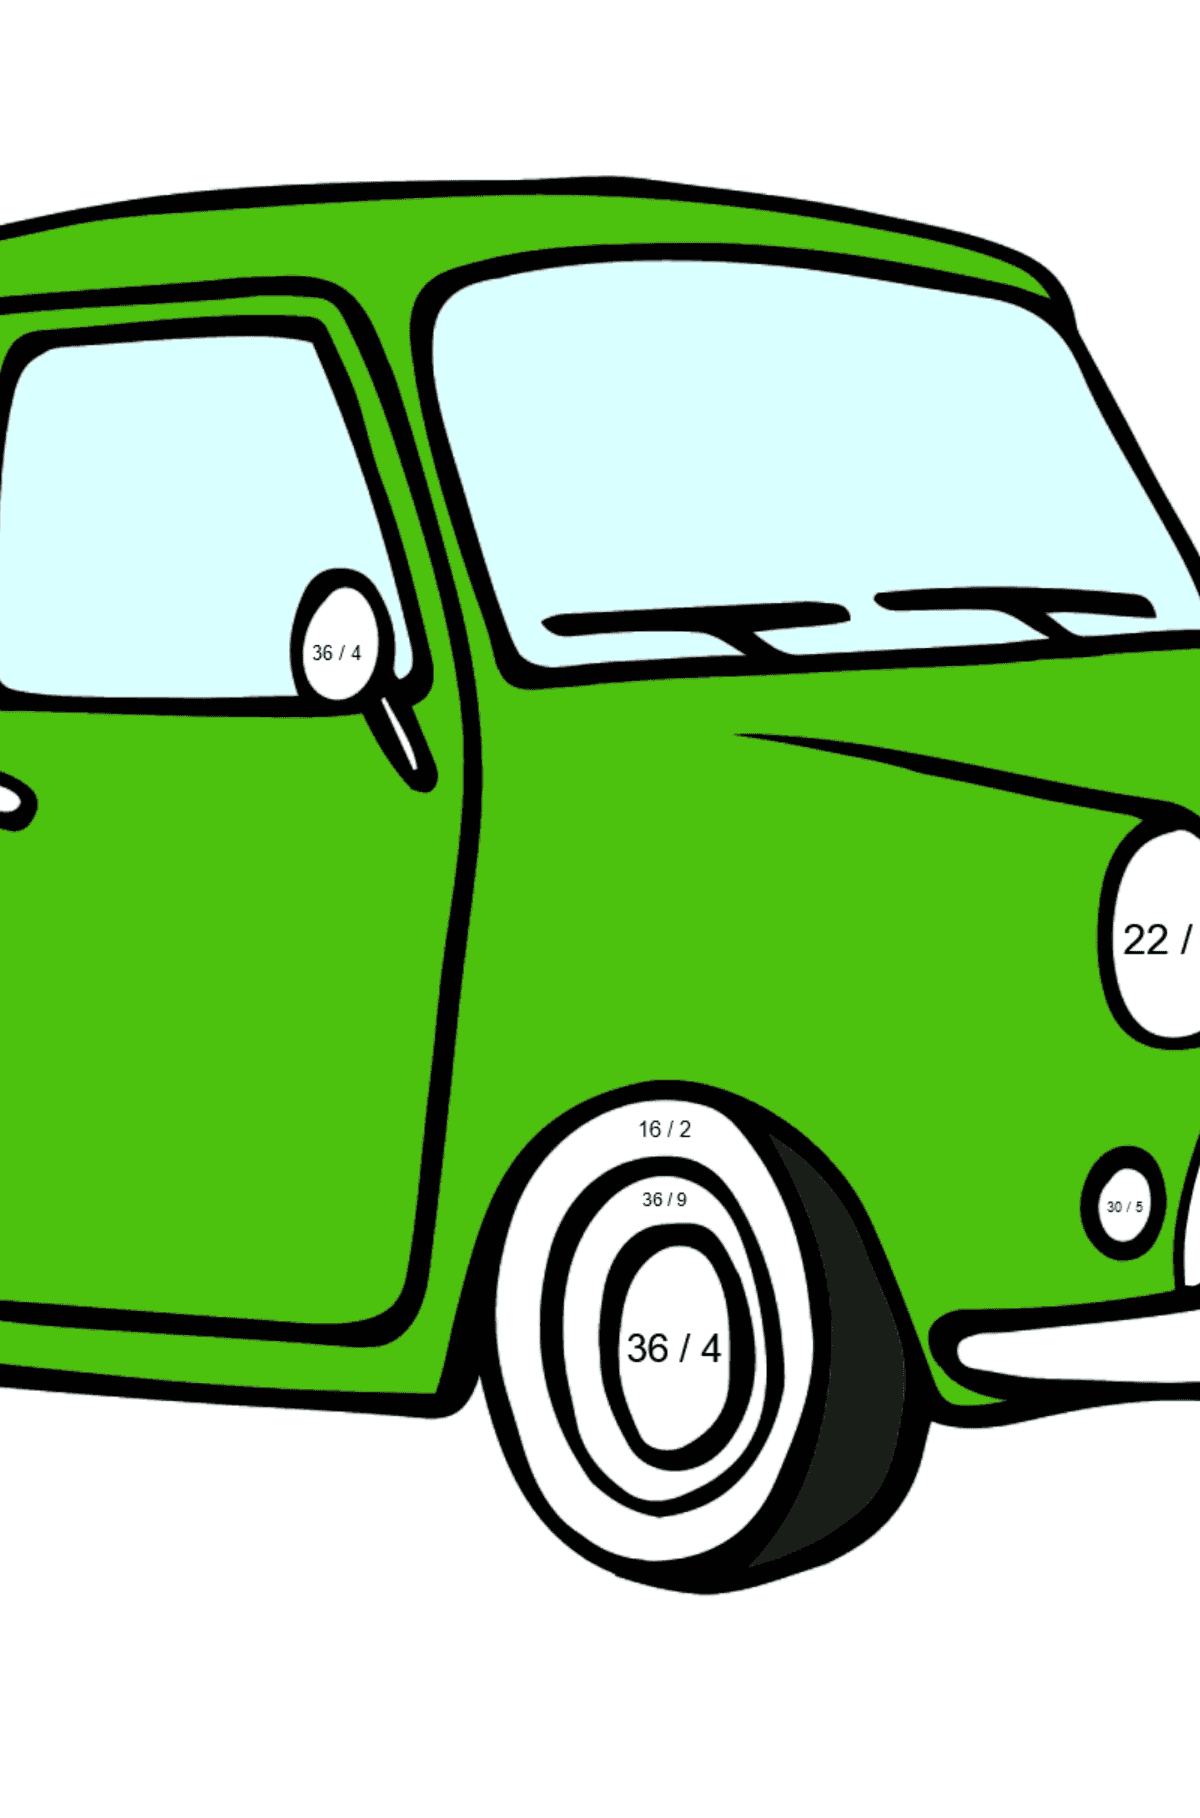 Fiat 500 coloring page (green car) - Math Coloring - Division for Kids